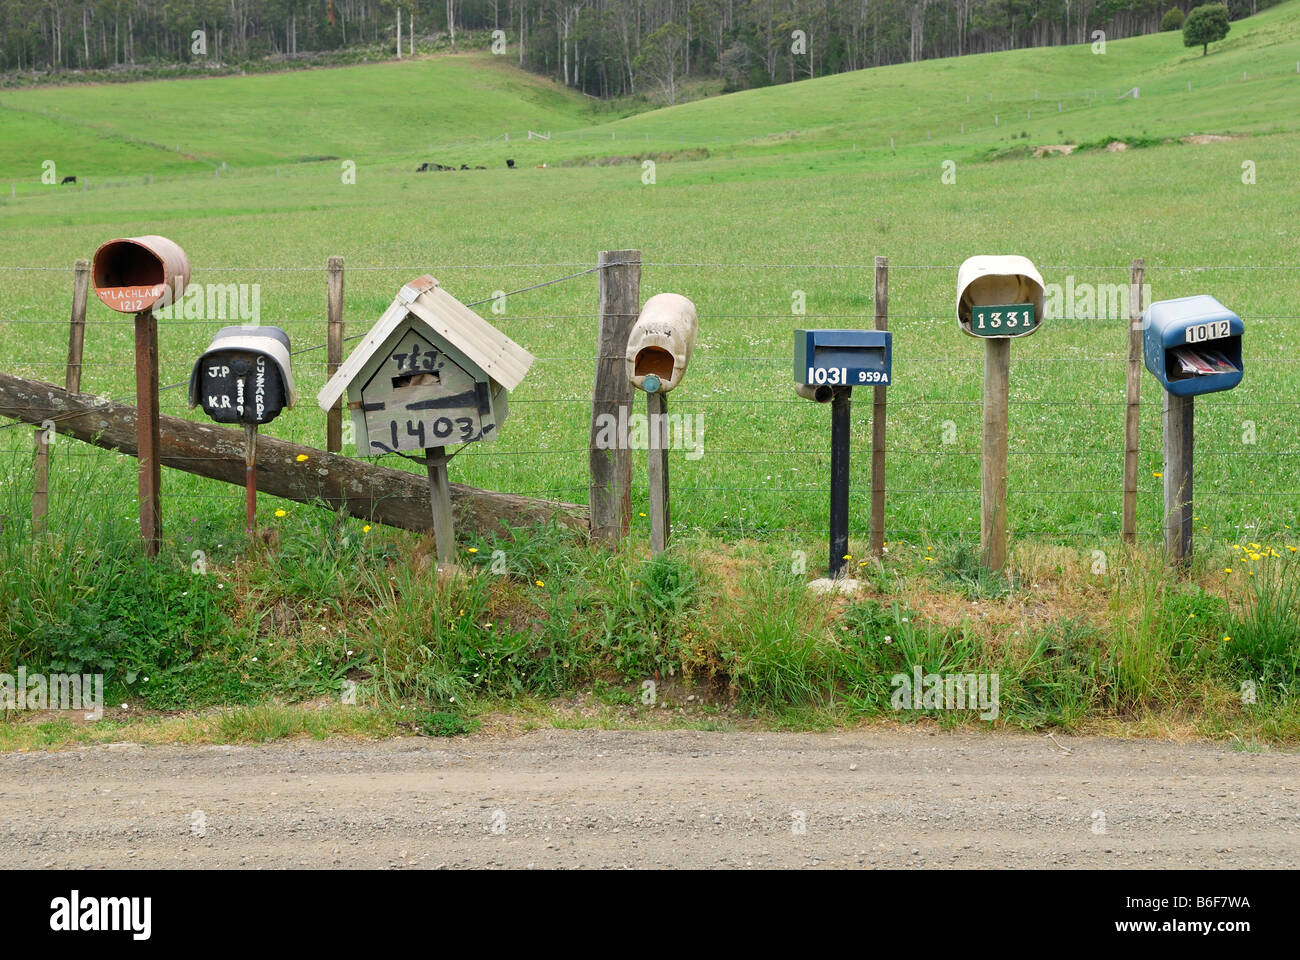 Post boxes of different farmhouses on the side of a road near Deloraine, Tasmania, Australia Stock Photo